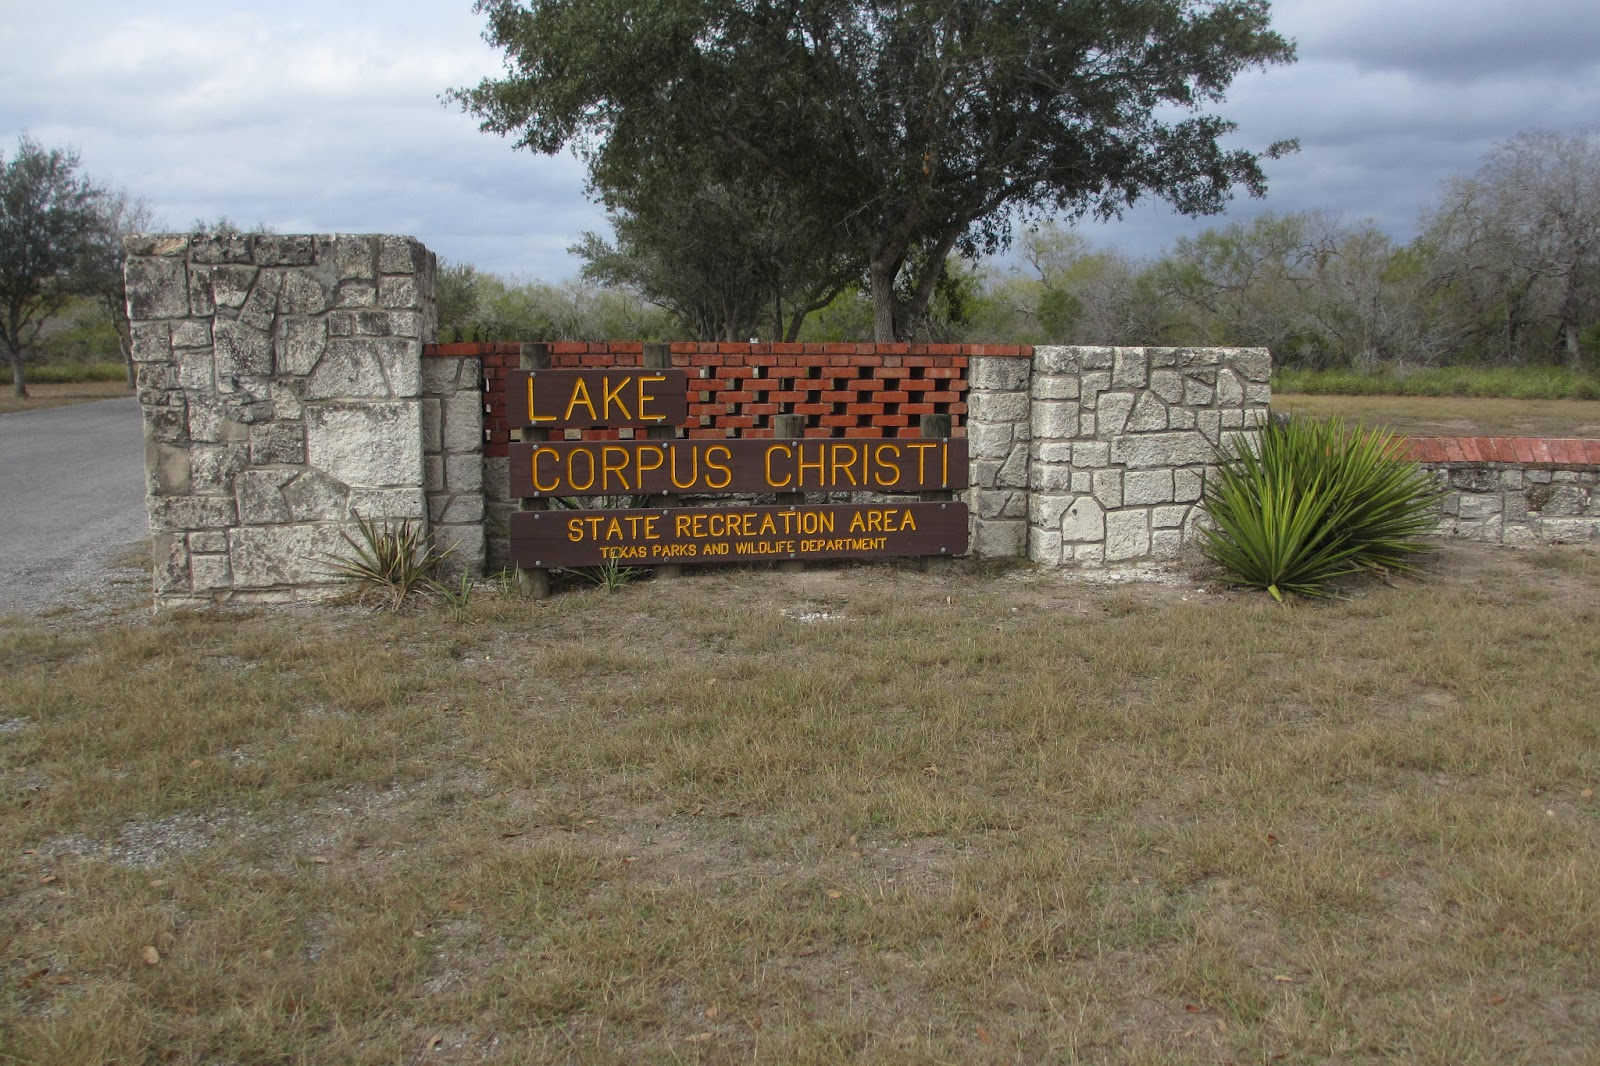 Alfreda And Daves Travels Lake Corpus Christi State Park